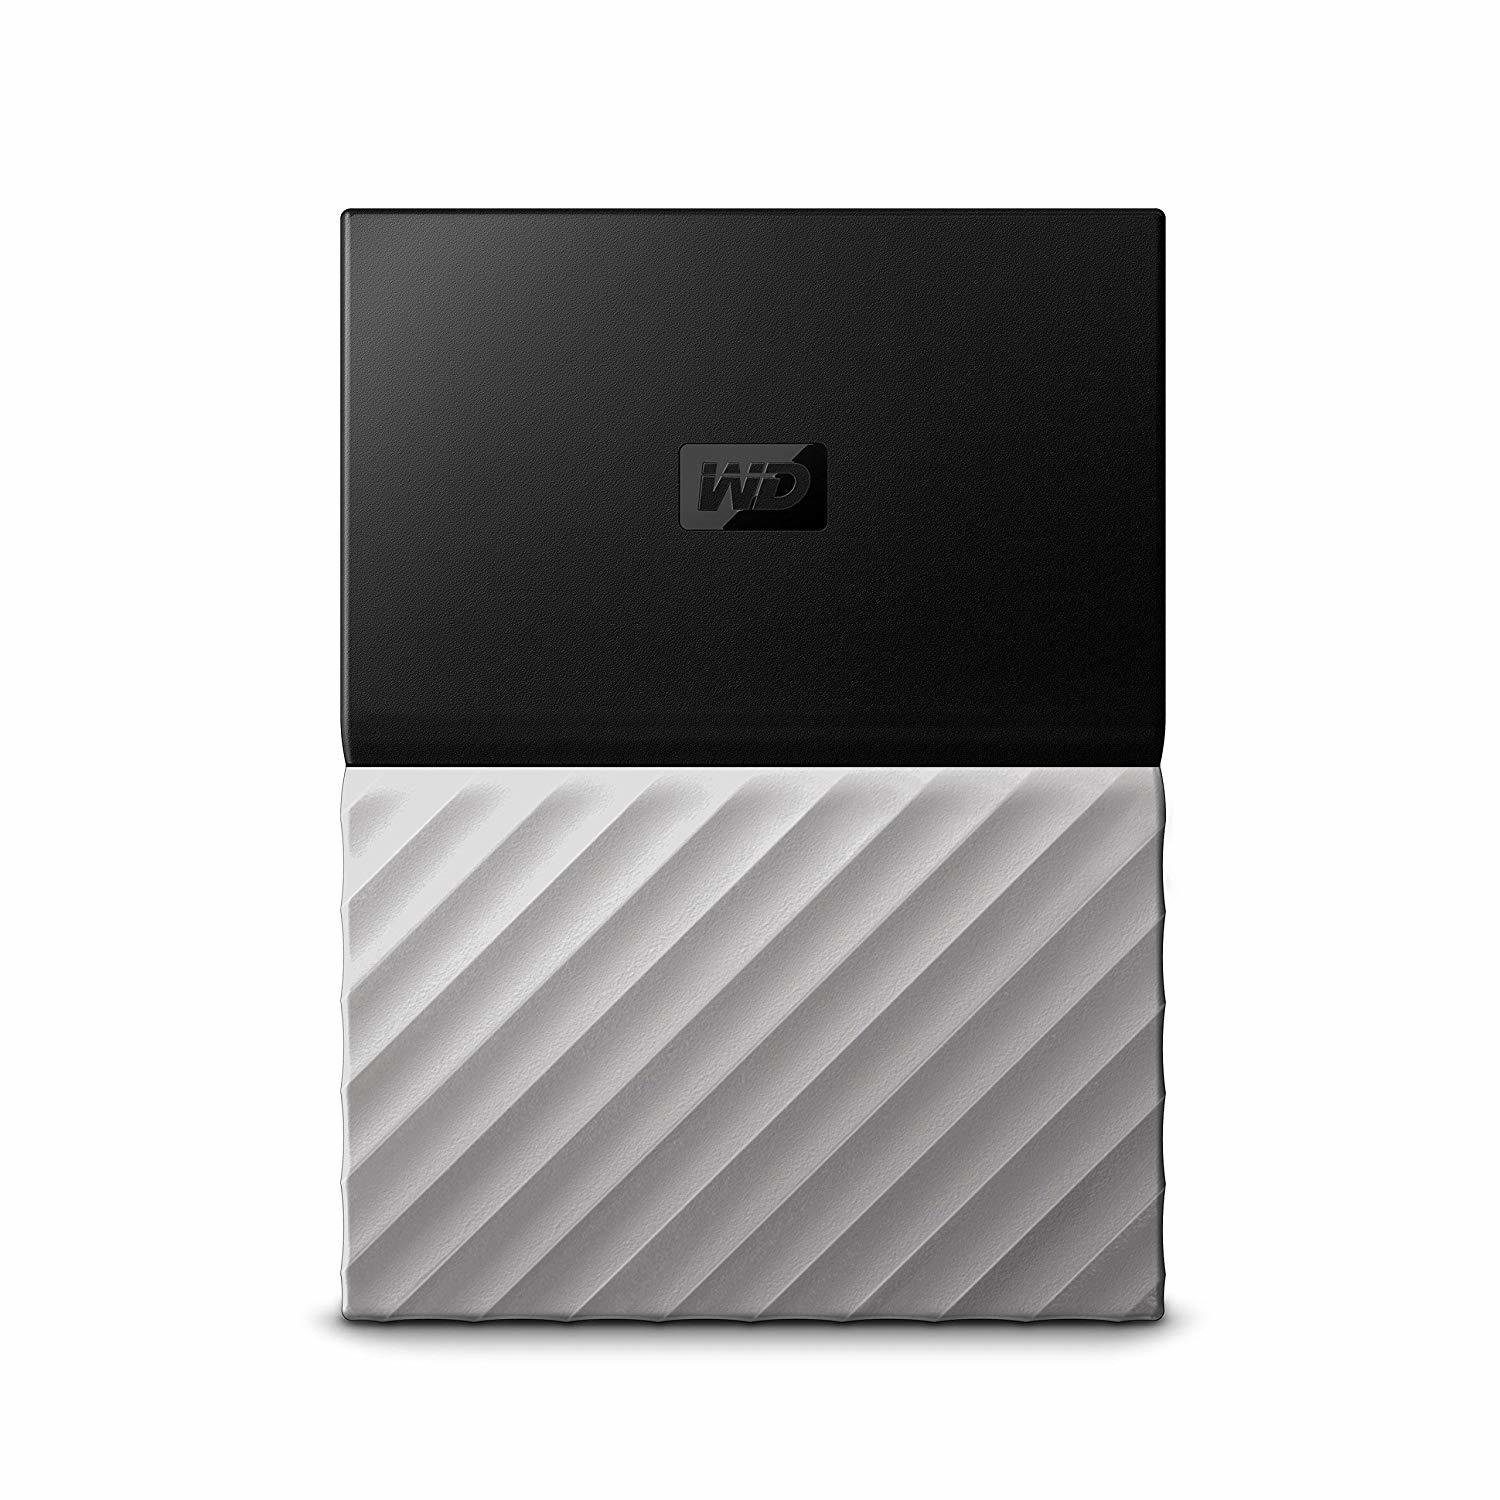 WD 3TB Black-Gray My Passport